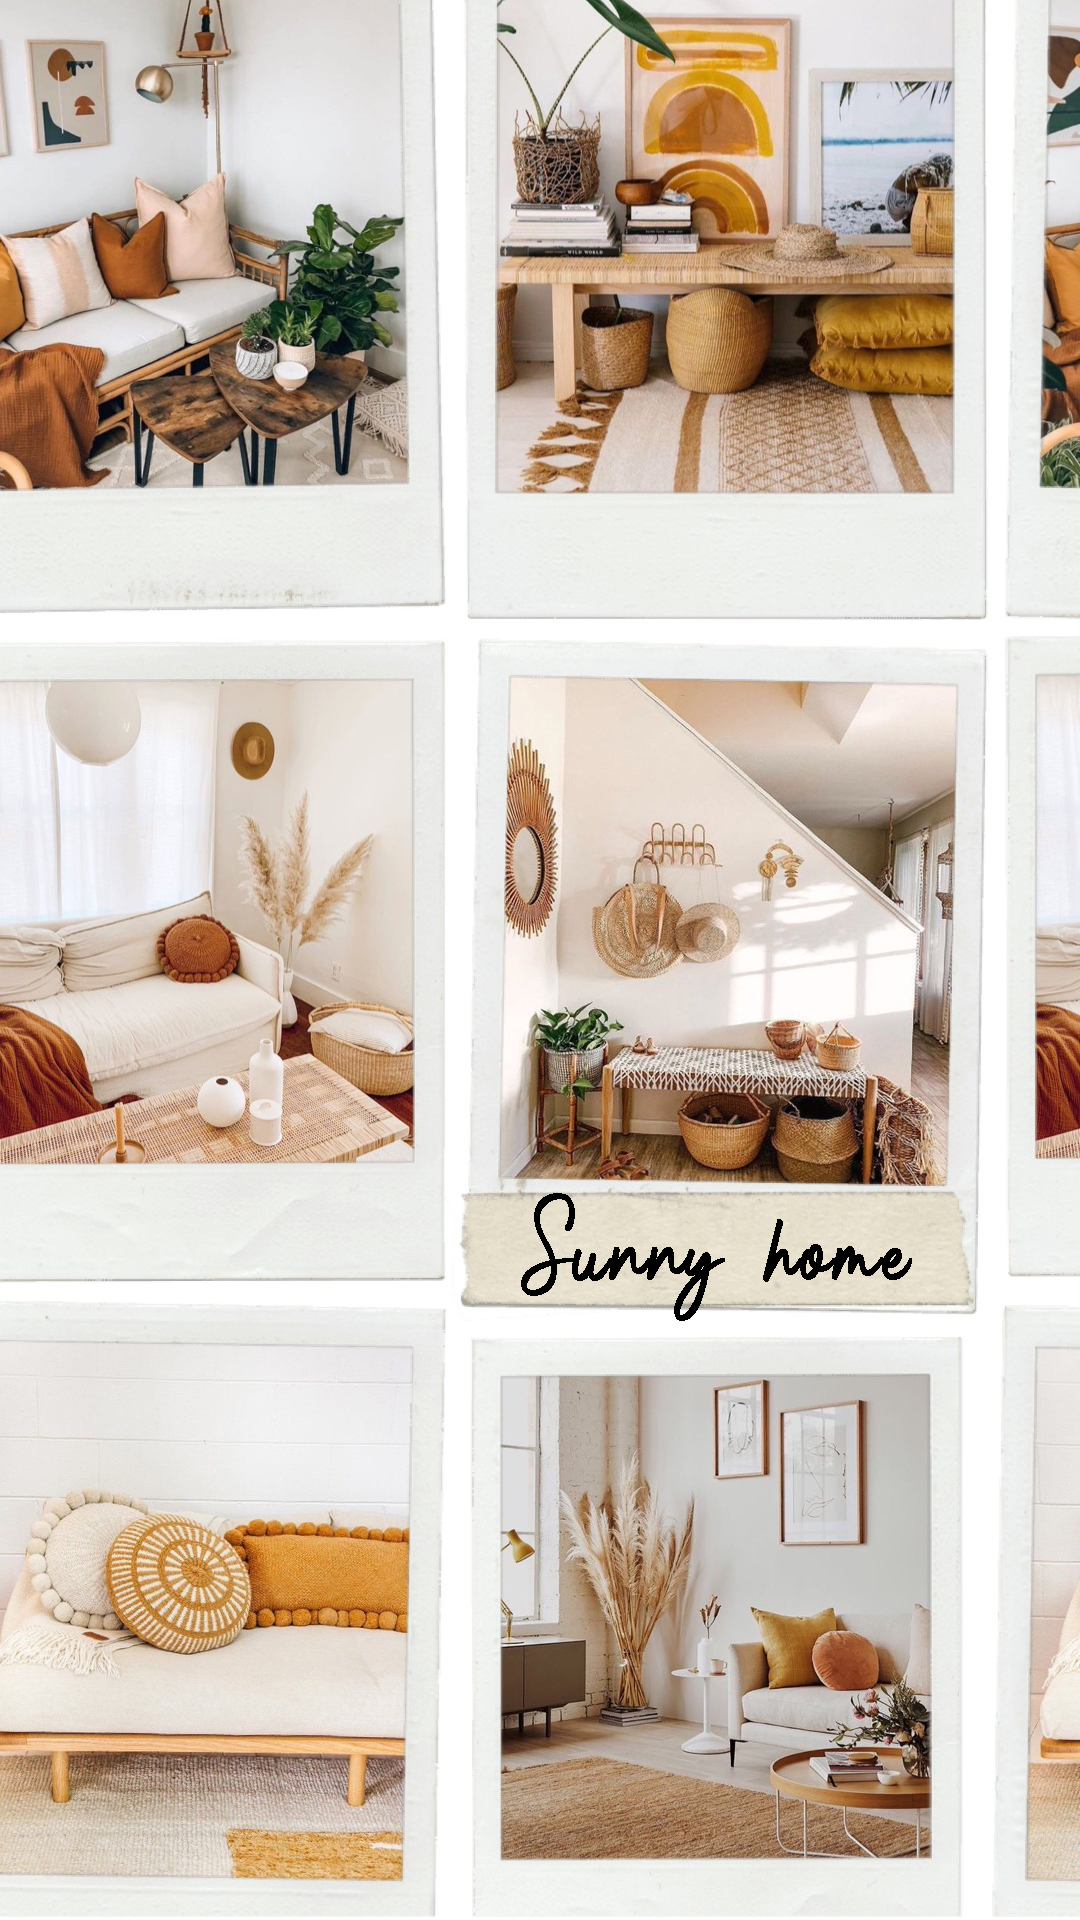 Sunny home DECOR